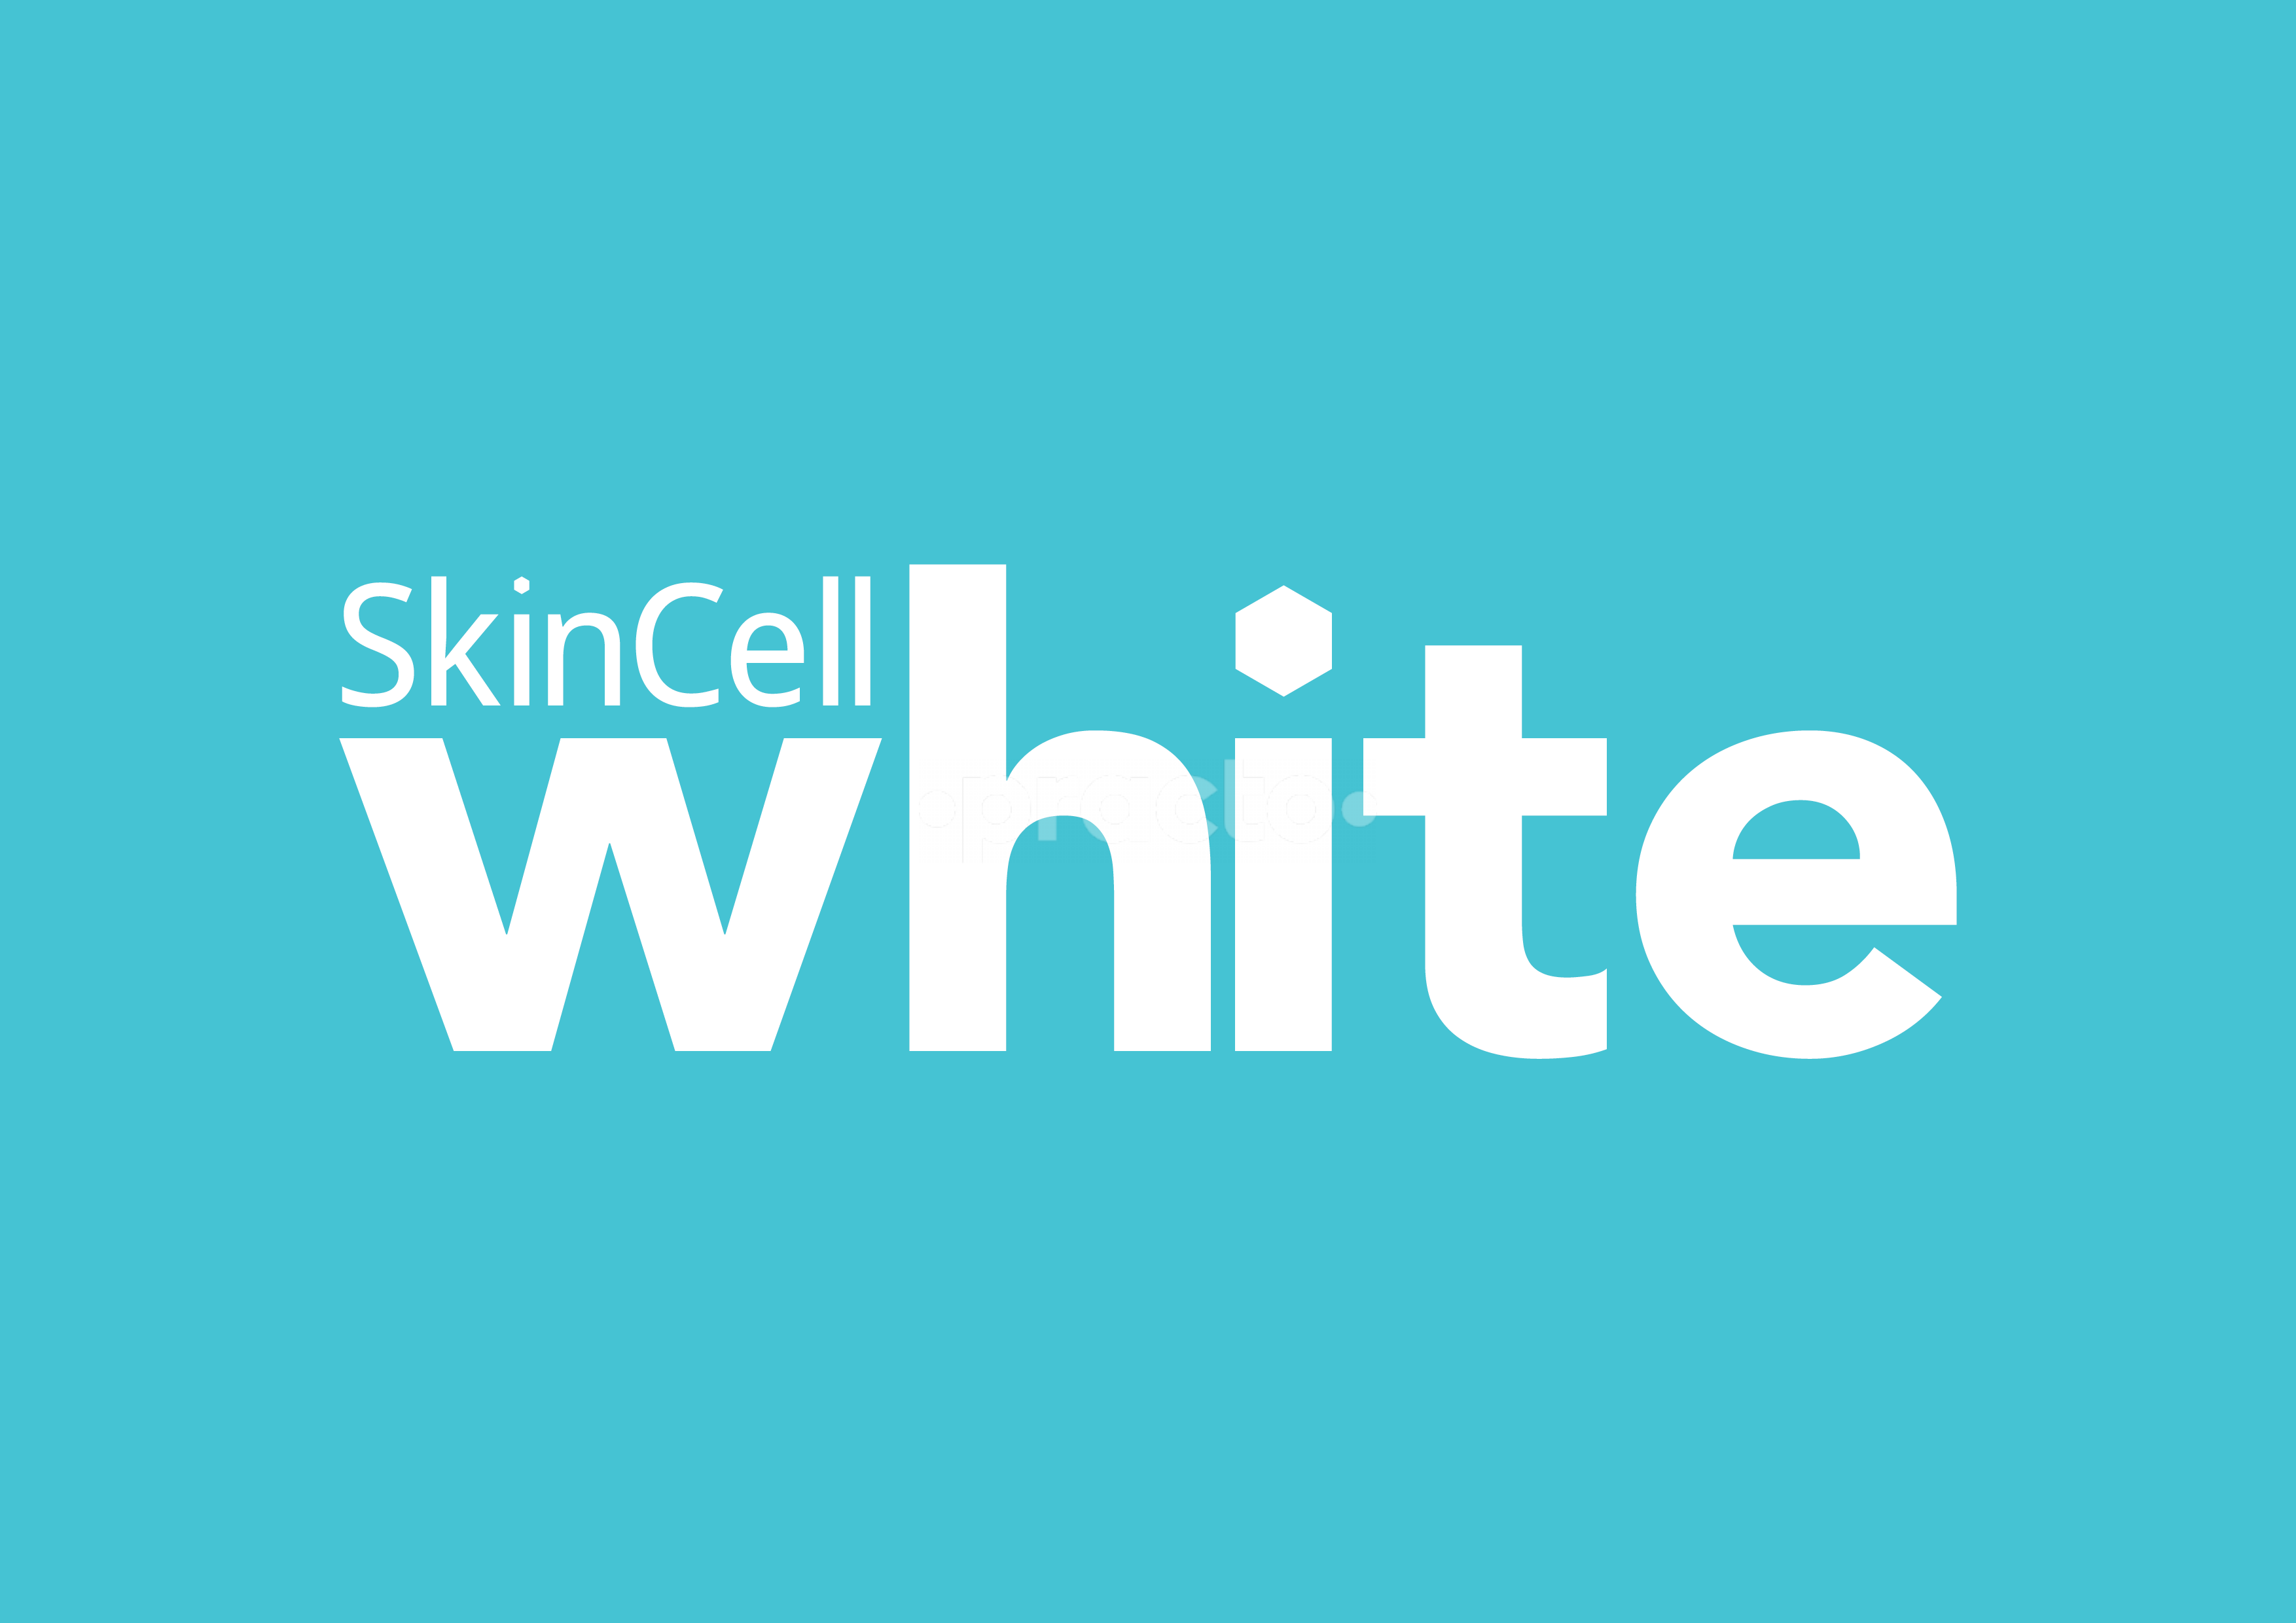 SkinCell White